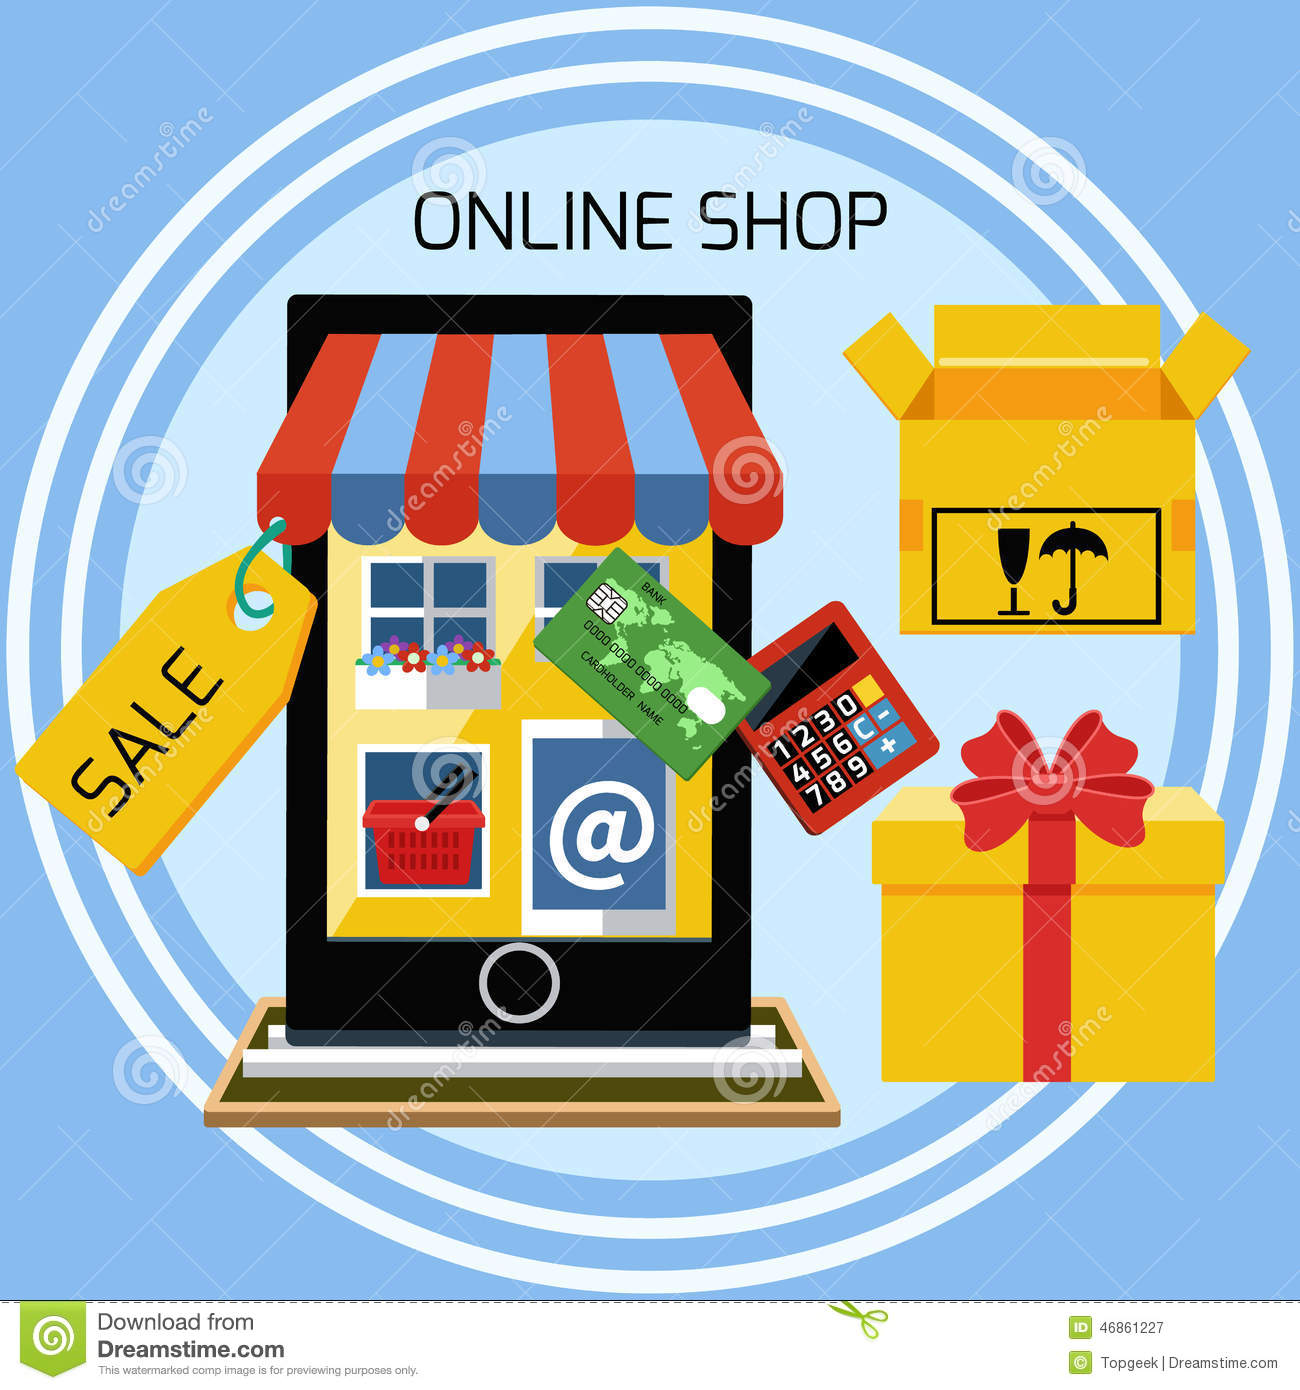 the internet and online commerce Irjmst volume 2 issue 3 online issn 2250 - 1959 traditional commerce vs e-commerce by gagandeep kaur (research scholar) due to the exponential growth of internet.